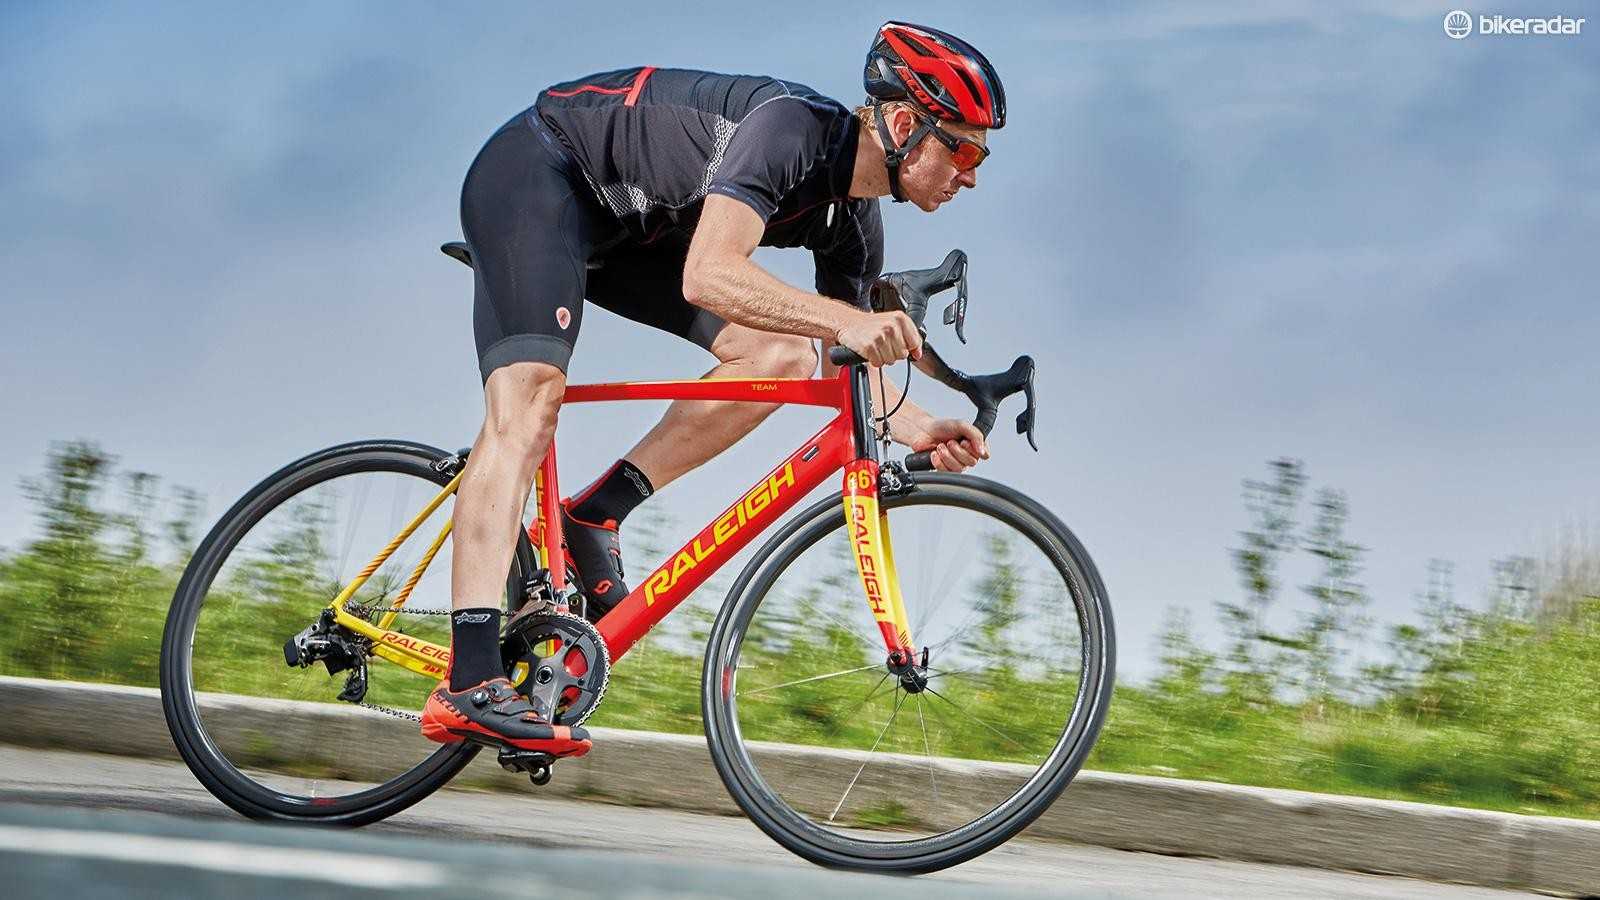 Raleigh's Militis Team eTap is a UK-assembled, distinct and brilliant racing weapon